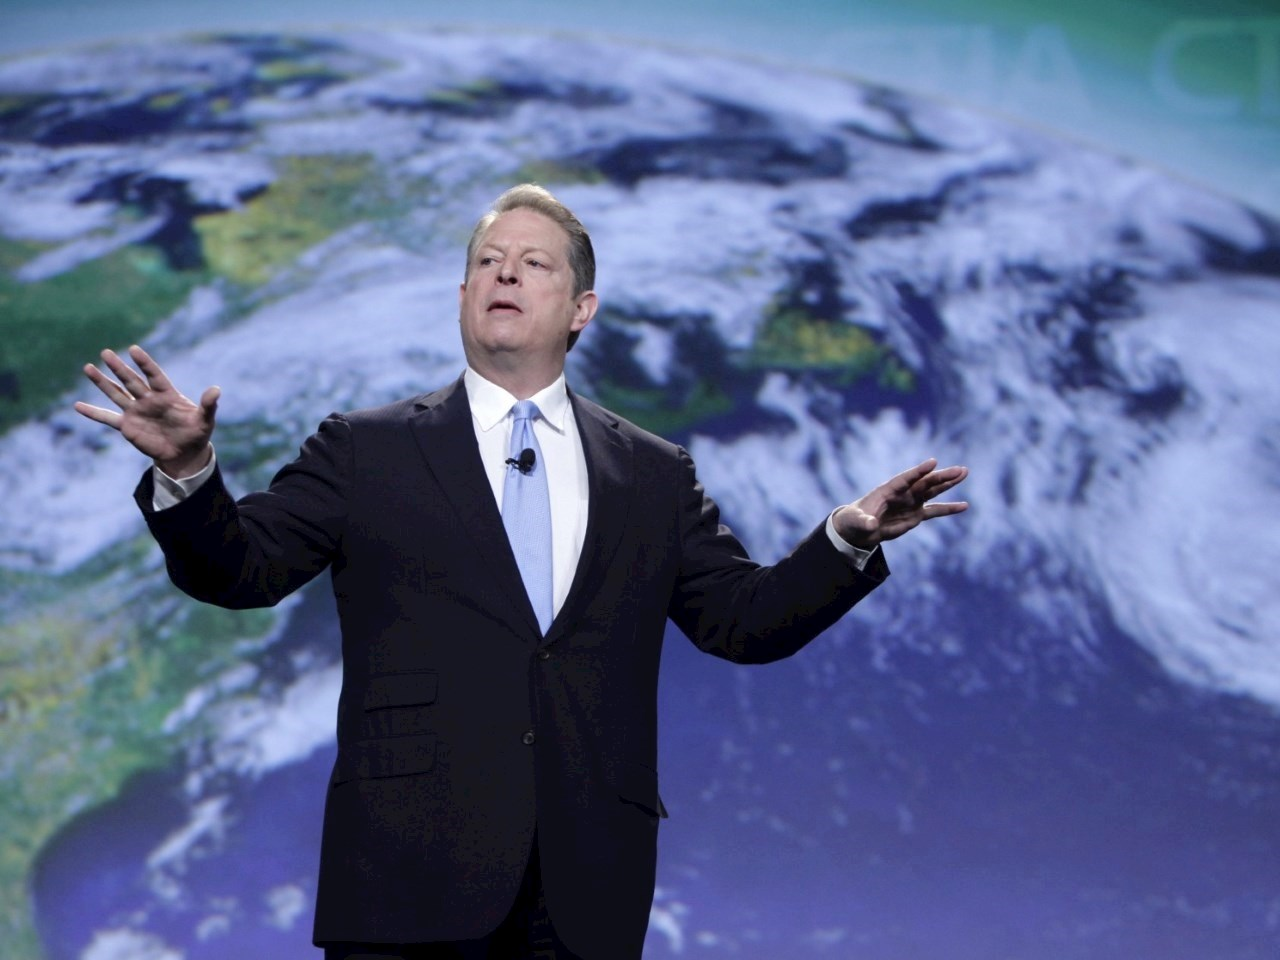 Al Gore Predicted Arctic Summer Ice Could Disappear In 2013